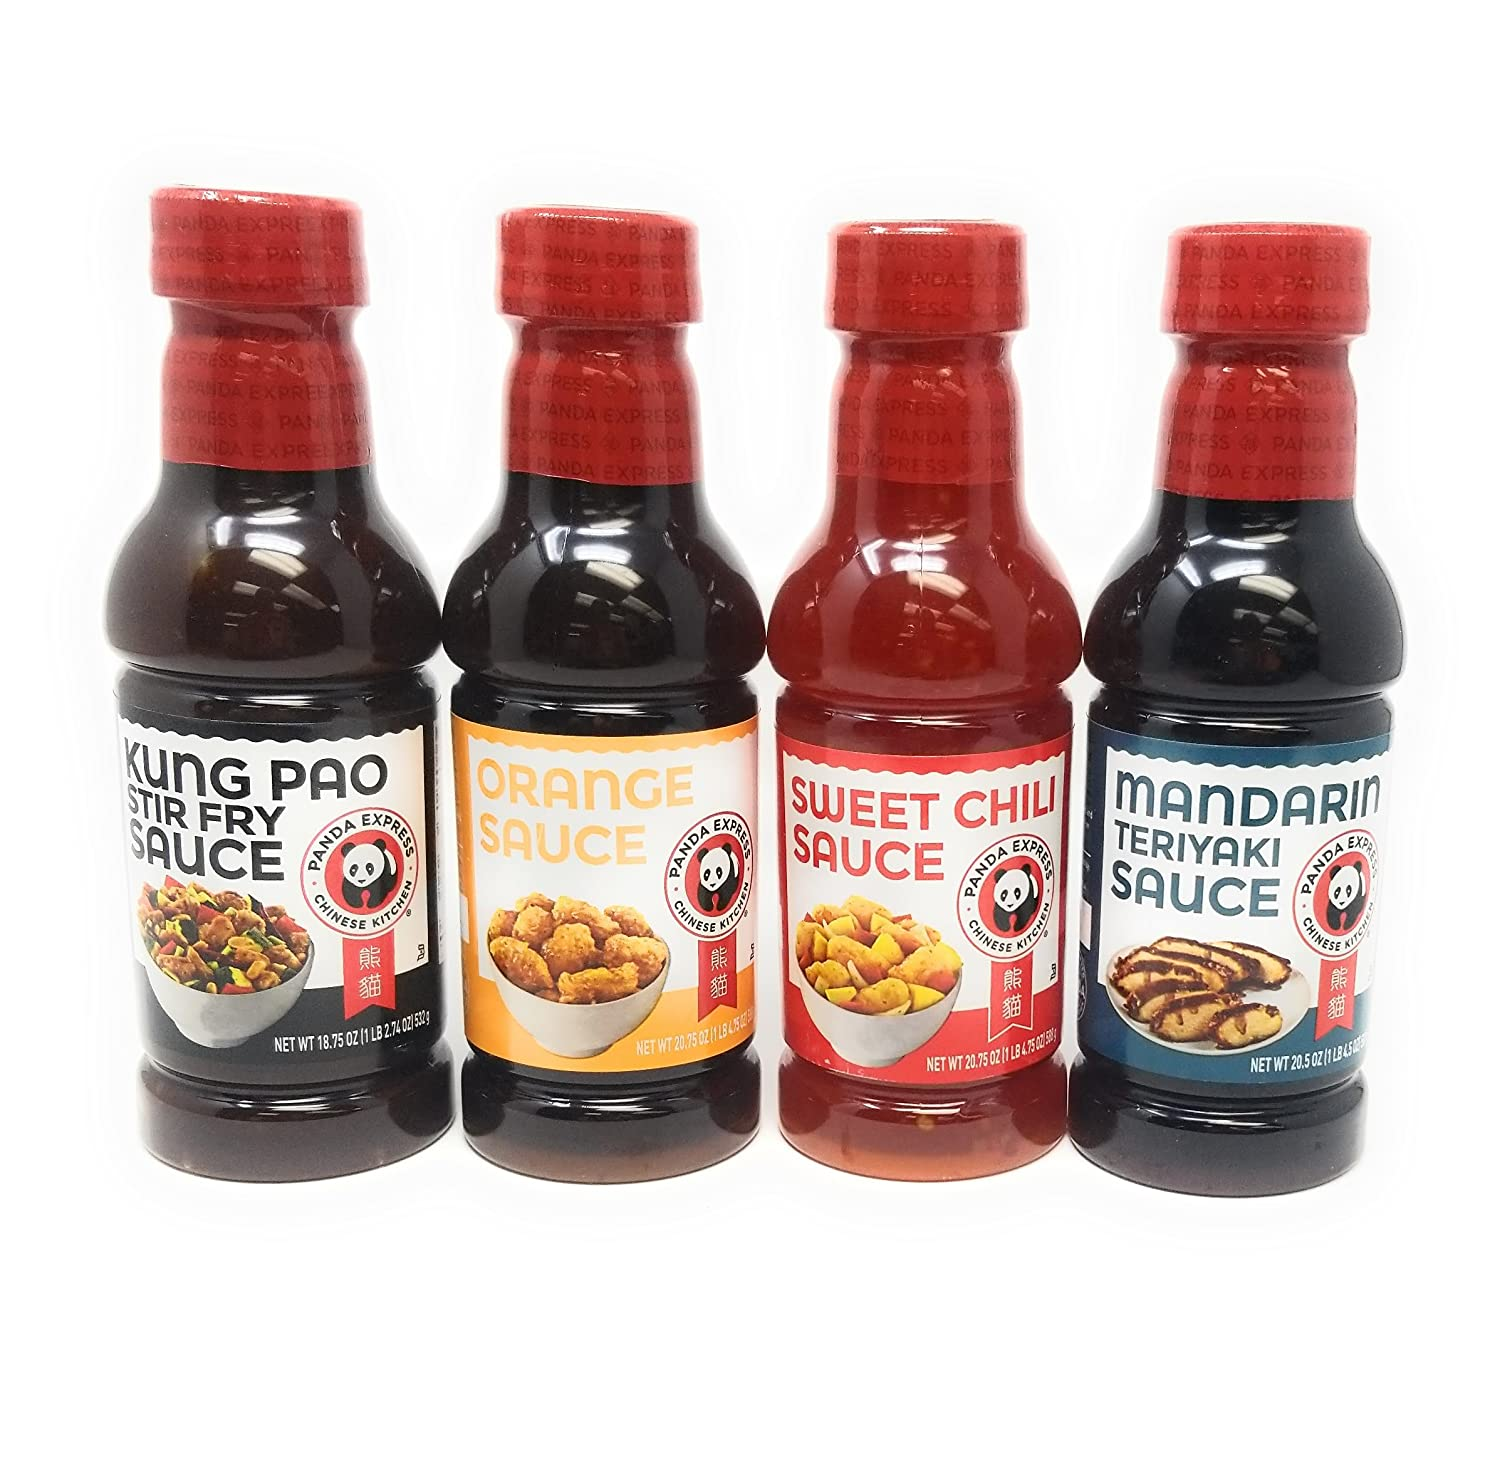 Amazon Com Panda Express Sauce Variety Bundle 18 75 Oz 20 75 Oz Pack Of 4 Includes 1 Bottle Sweet Chile Sauce Mandarin Teriyaki Sauce Orange Sauce Kung Pao Sauce Grocery Gourmet Food